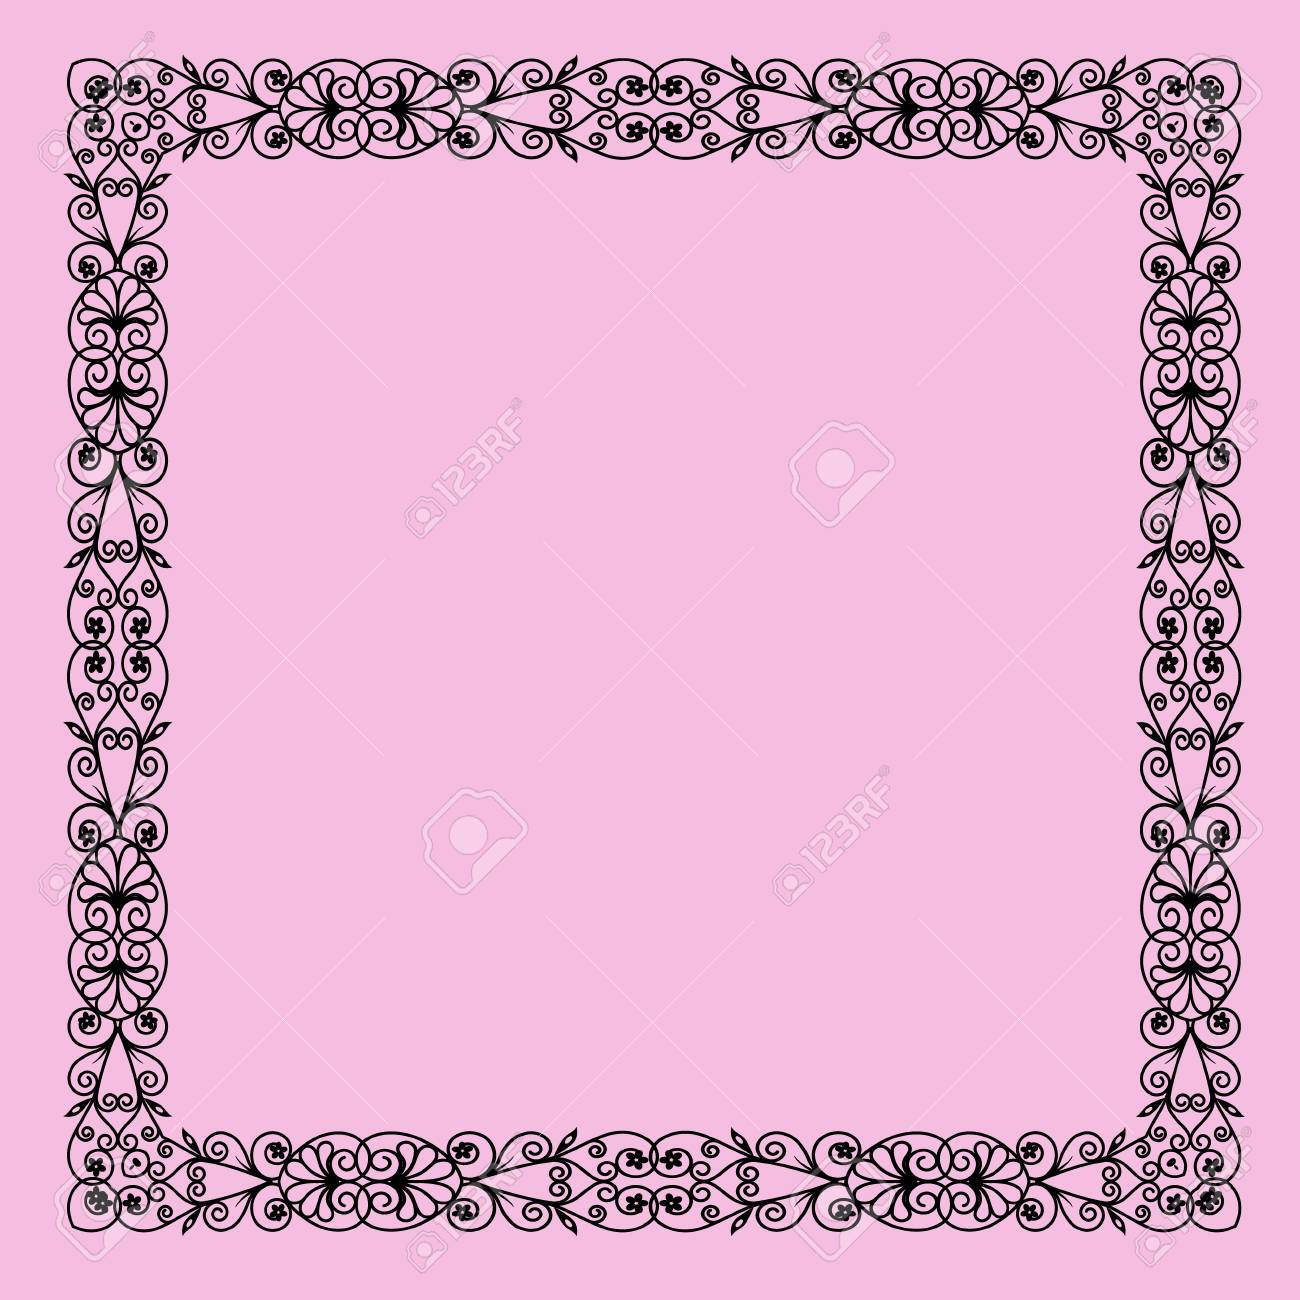 elegant black lace frame on a pink background royalty free cliparts vectors and stock illustration image 114351757 elegant black lace frame on a pink background